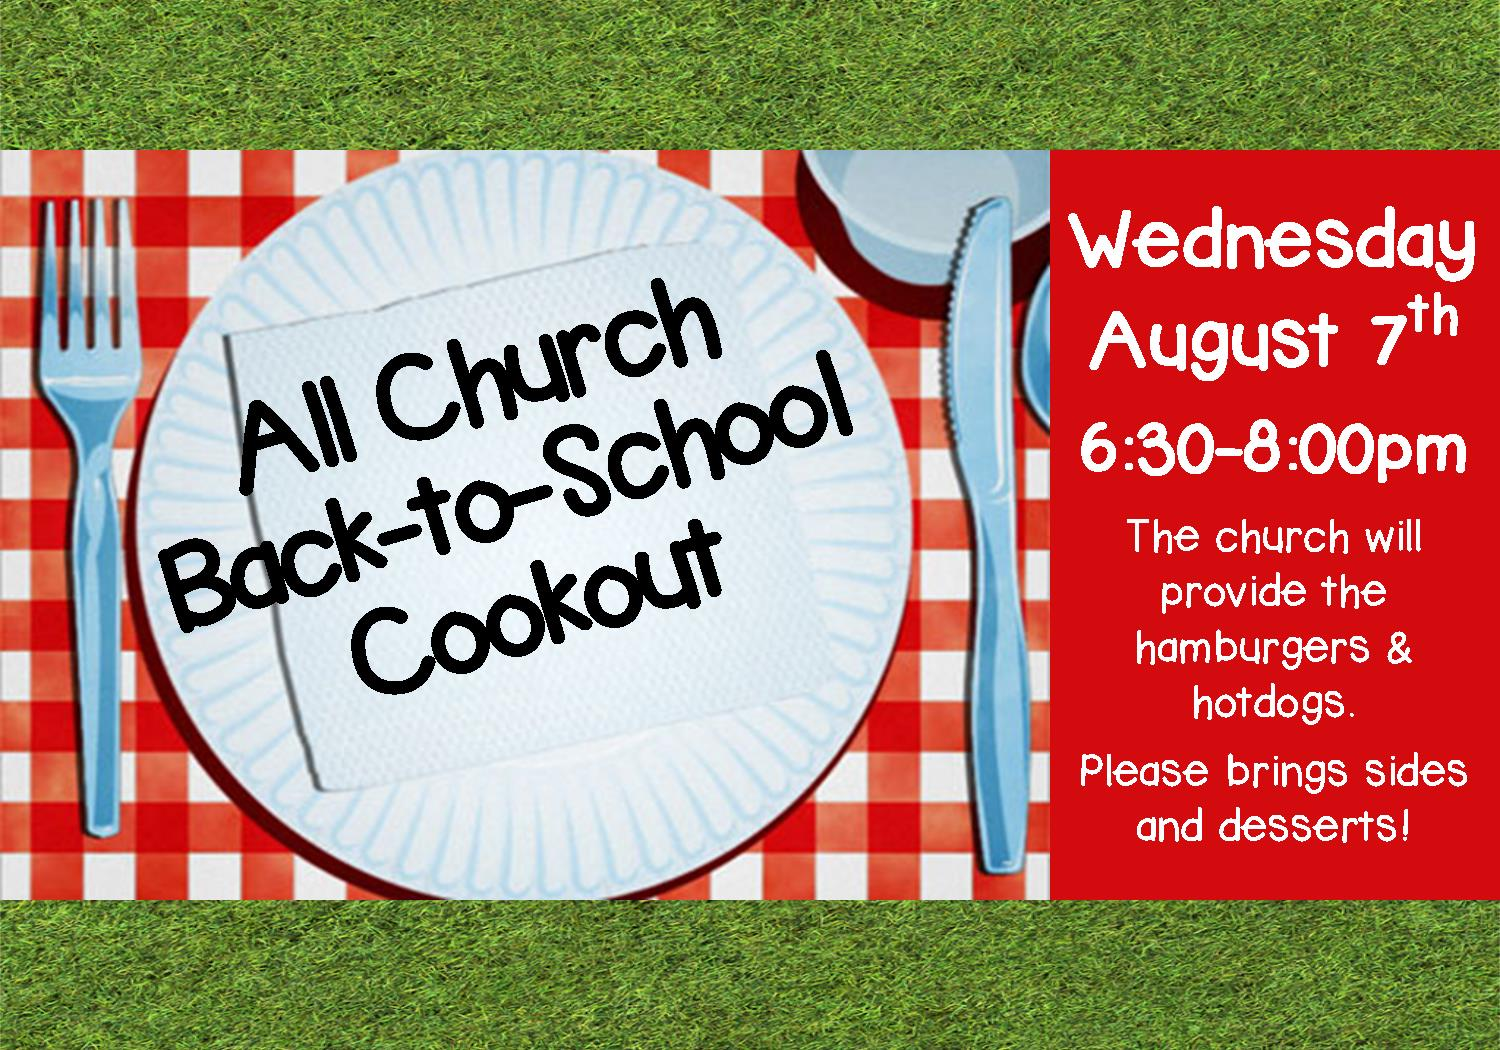 back-to-school cookout 2019